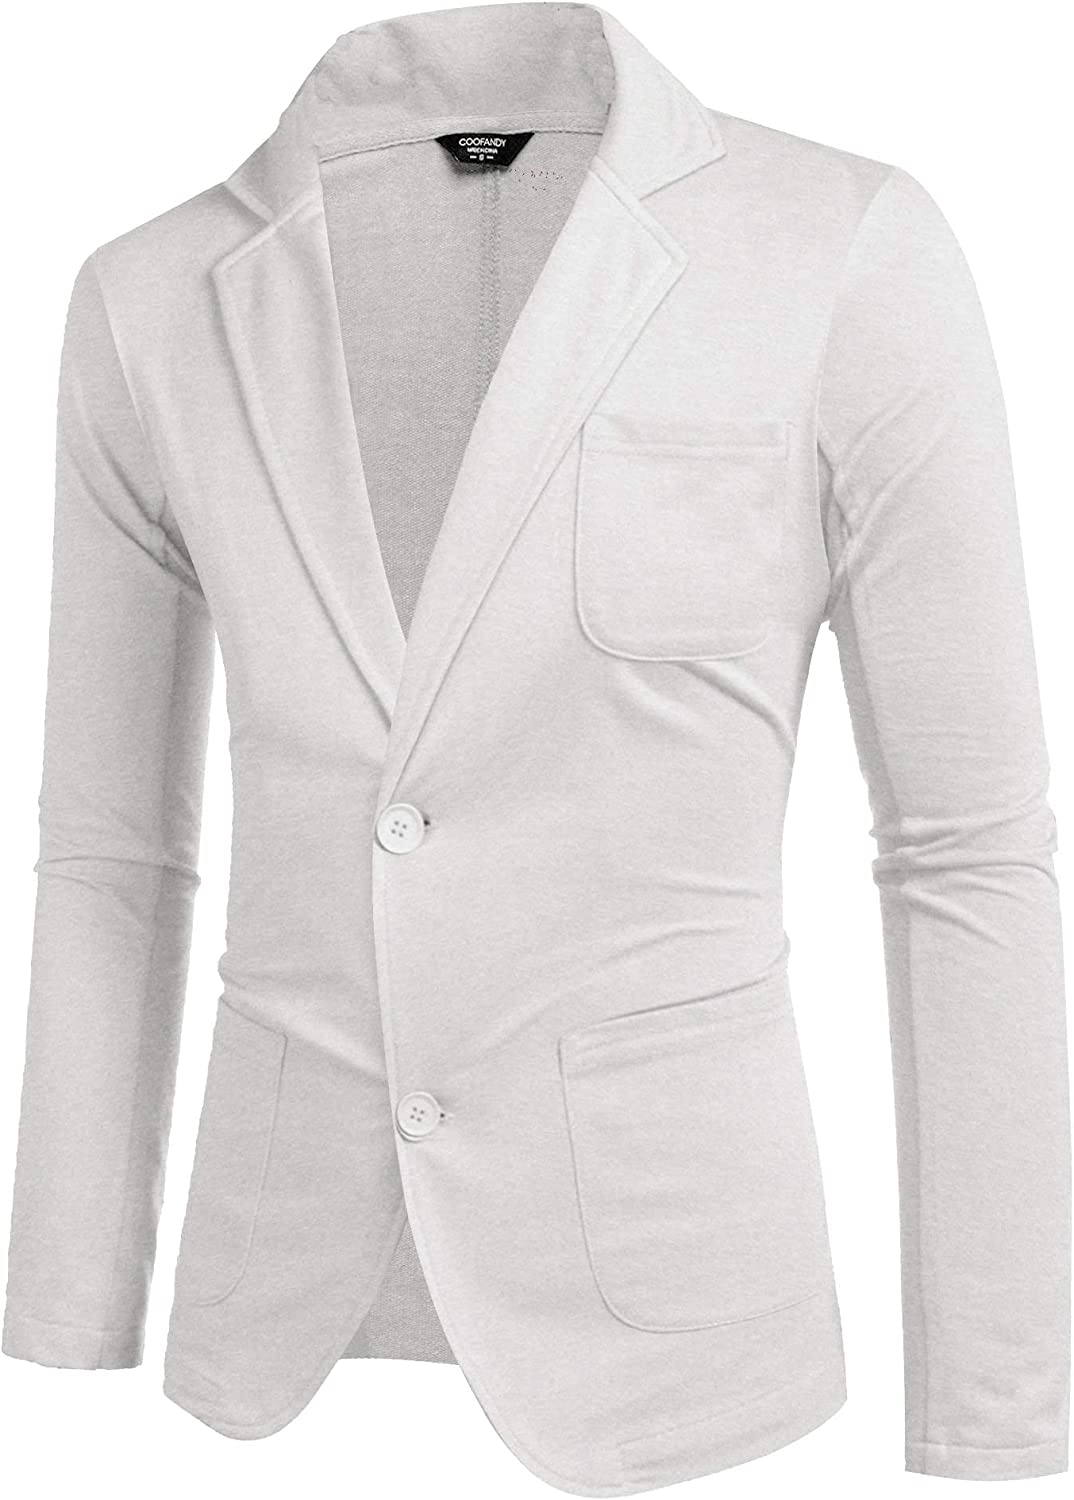 COOFANDY Mens Max 88% OFF NEW Cotton Casual Two Light Lapel Jacket Blazer Button